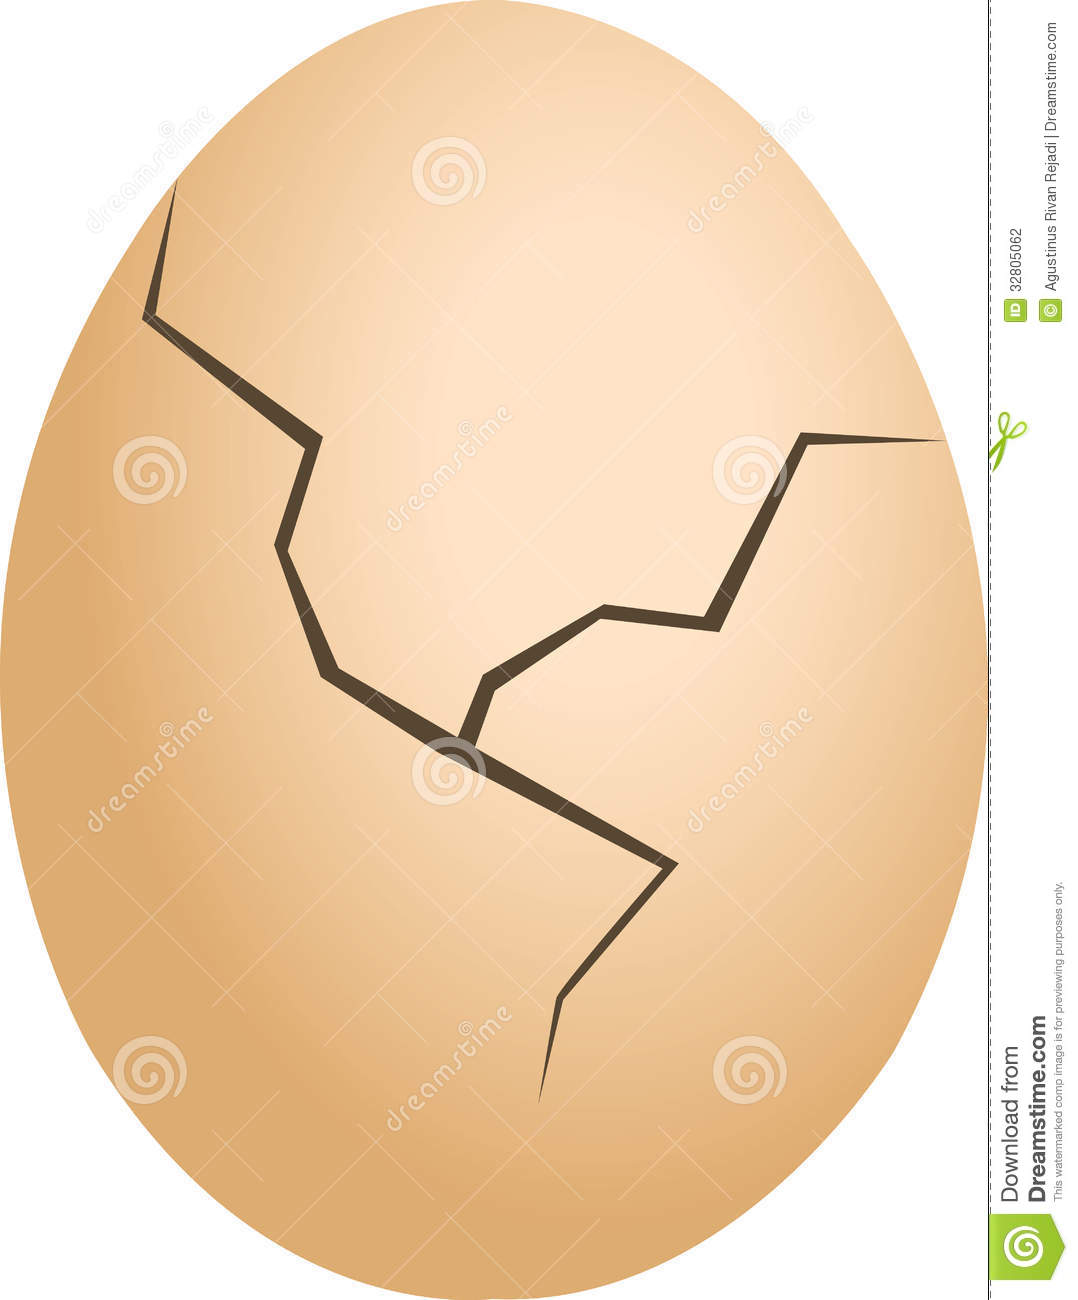 Egg Cracked